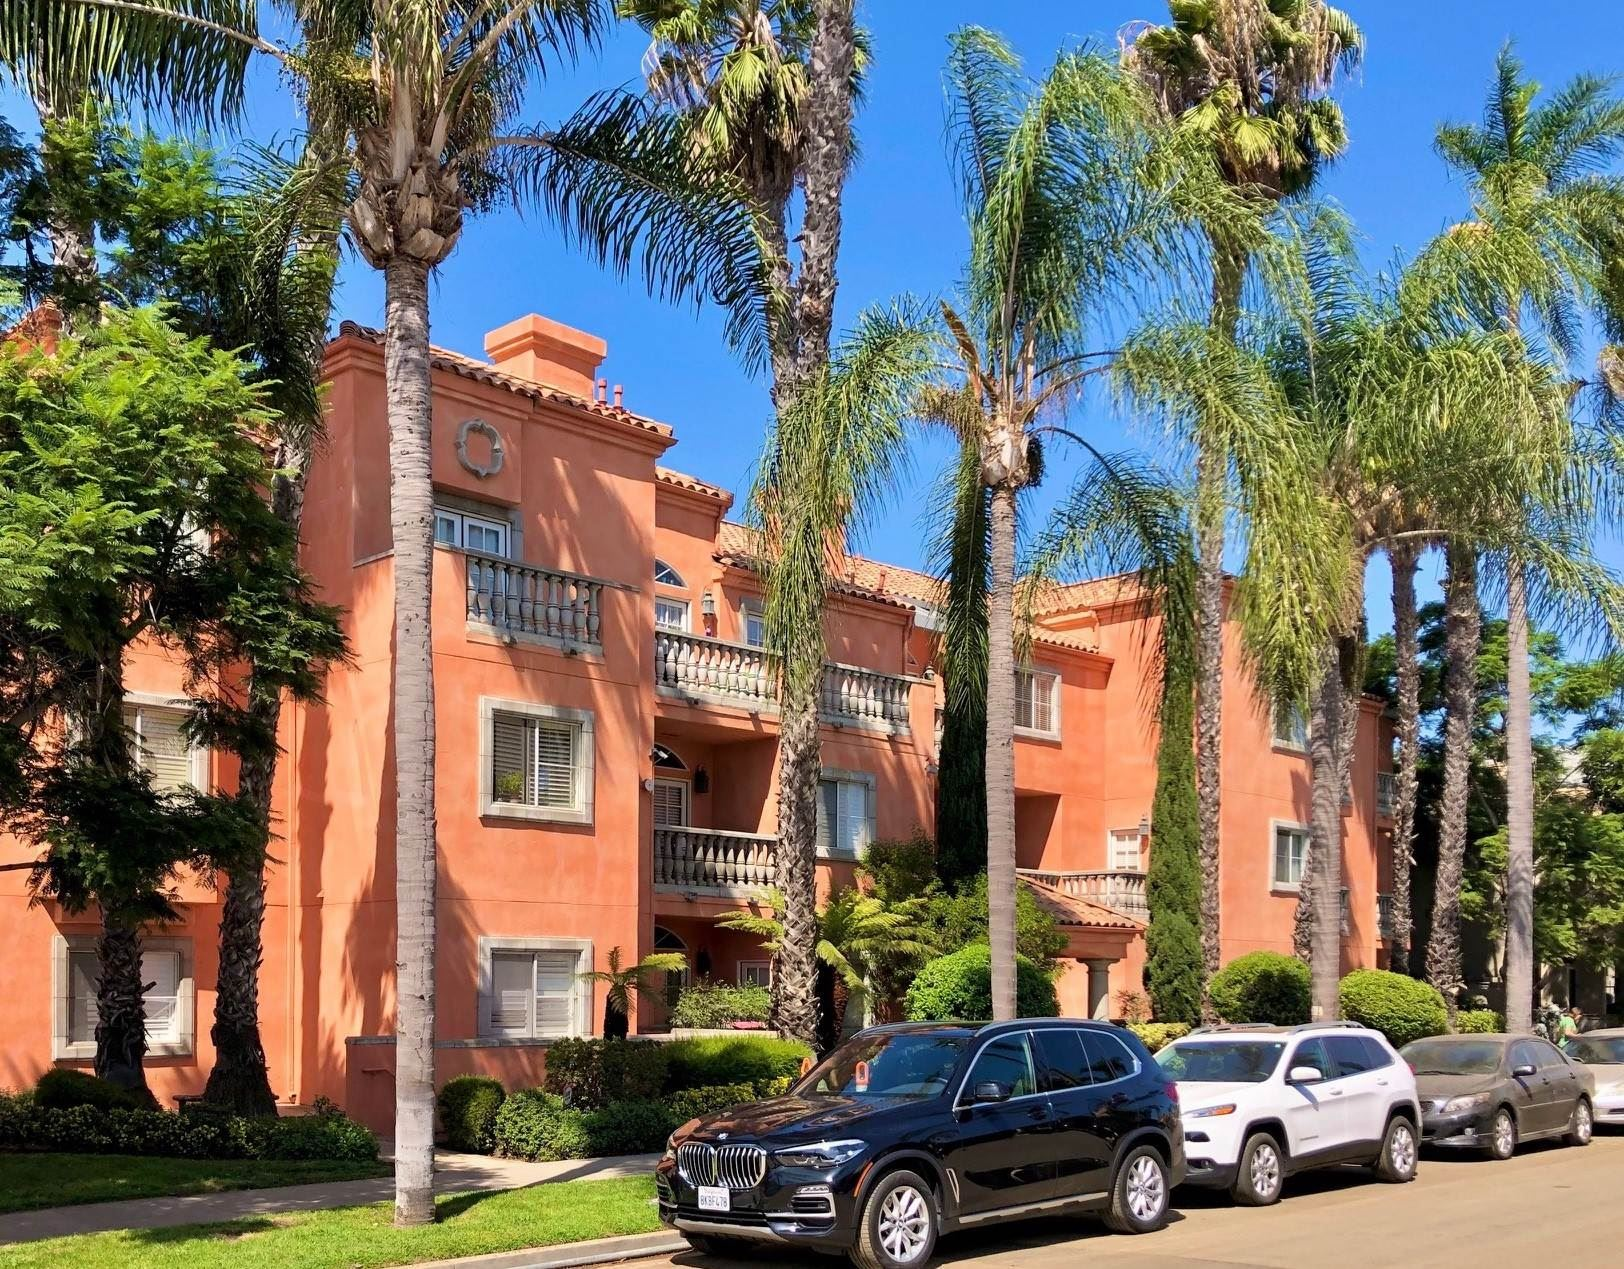 Photo of 3620 3Rd Ave #208, San Diego, CA 92103 (MLS # 200045638)